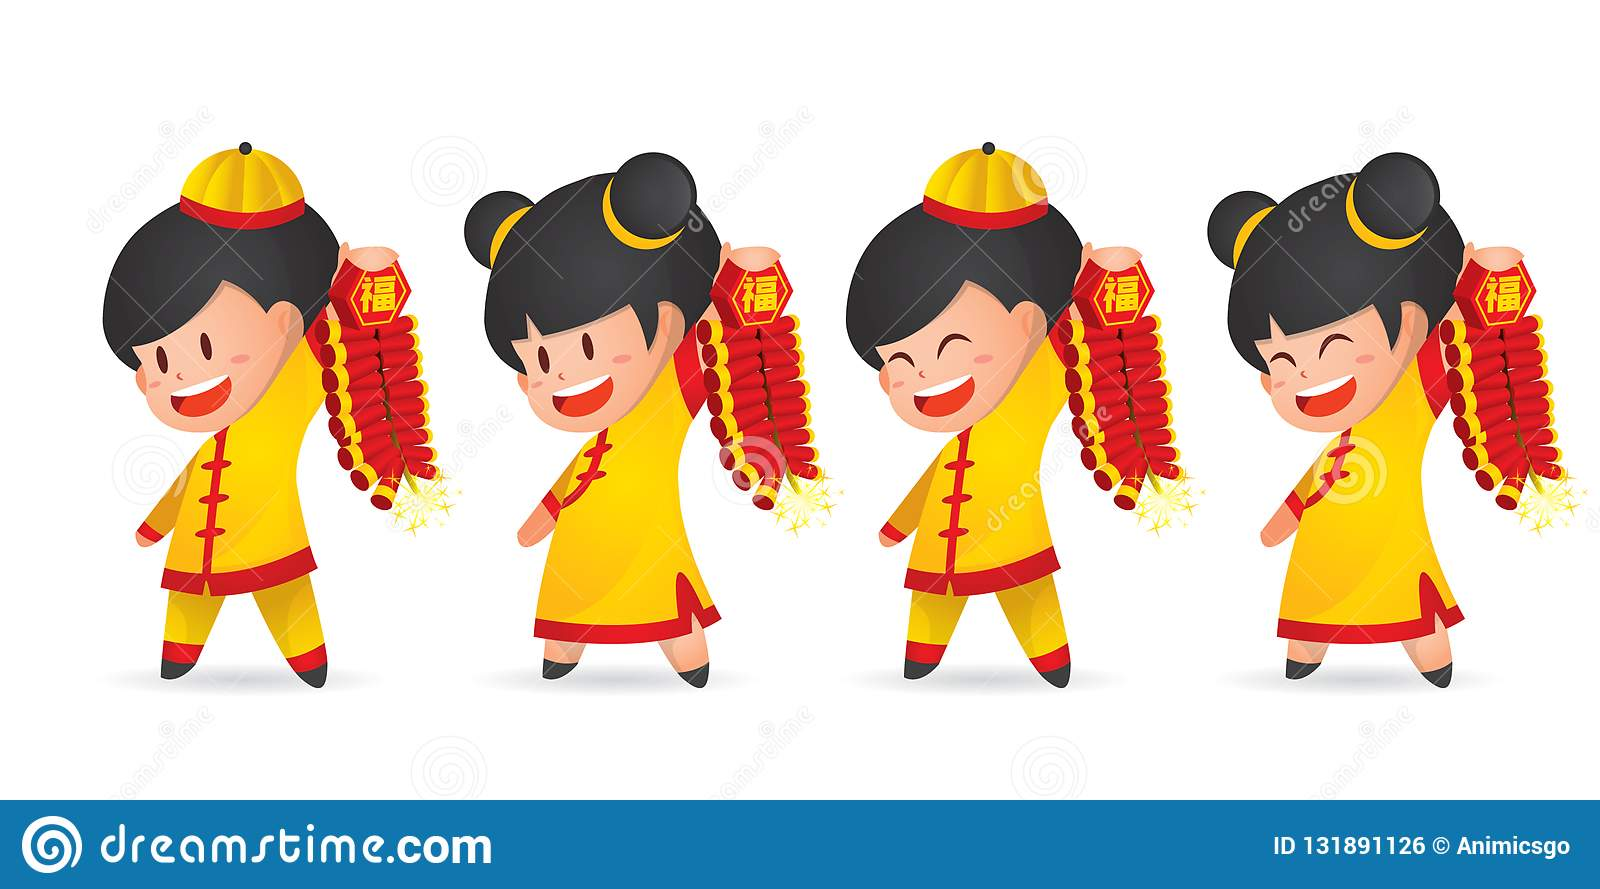 Cute cartoon Chinese New Year boy and girl having fun with firecracker, isolated on white.